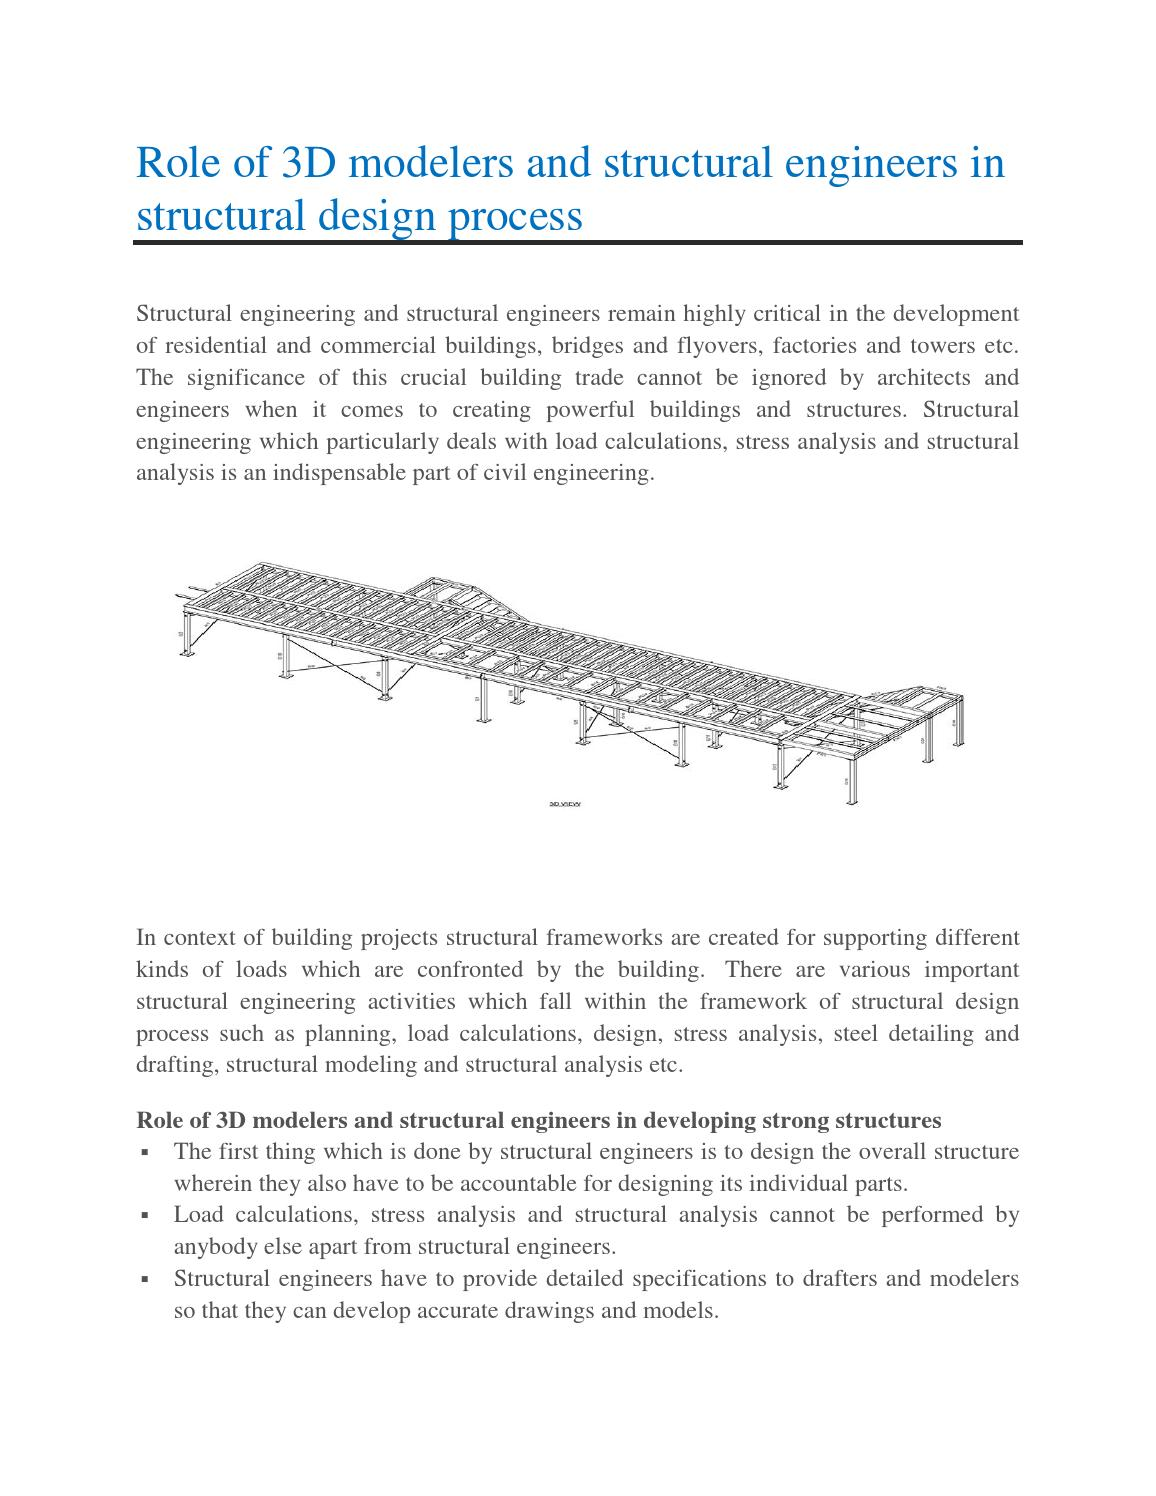 Role of 3d modelers and structural engineers in structural